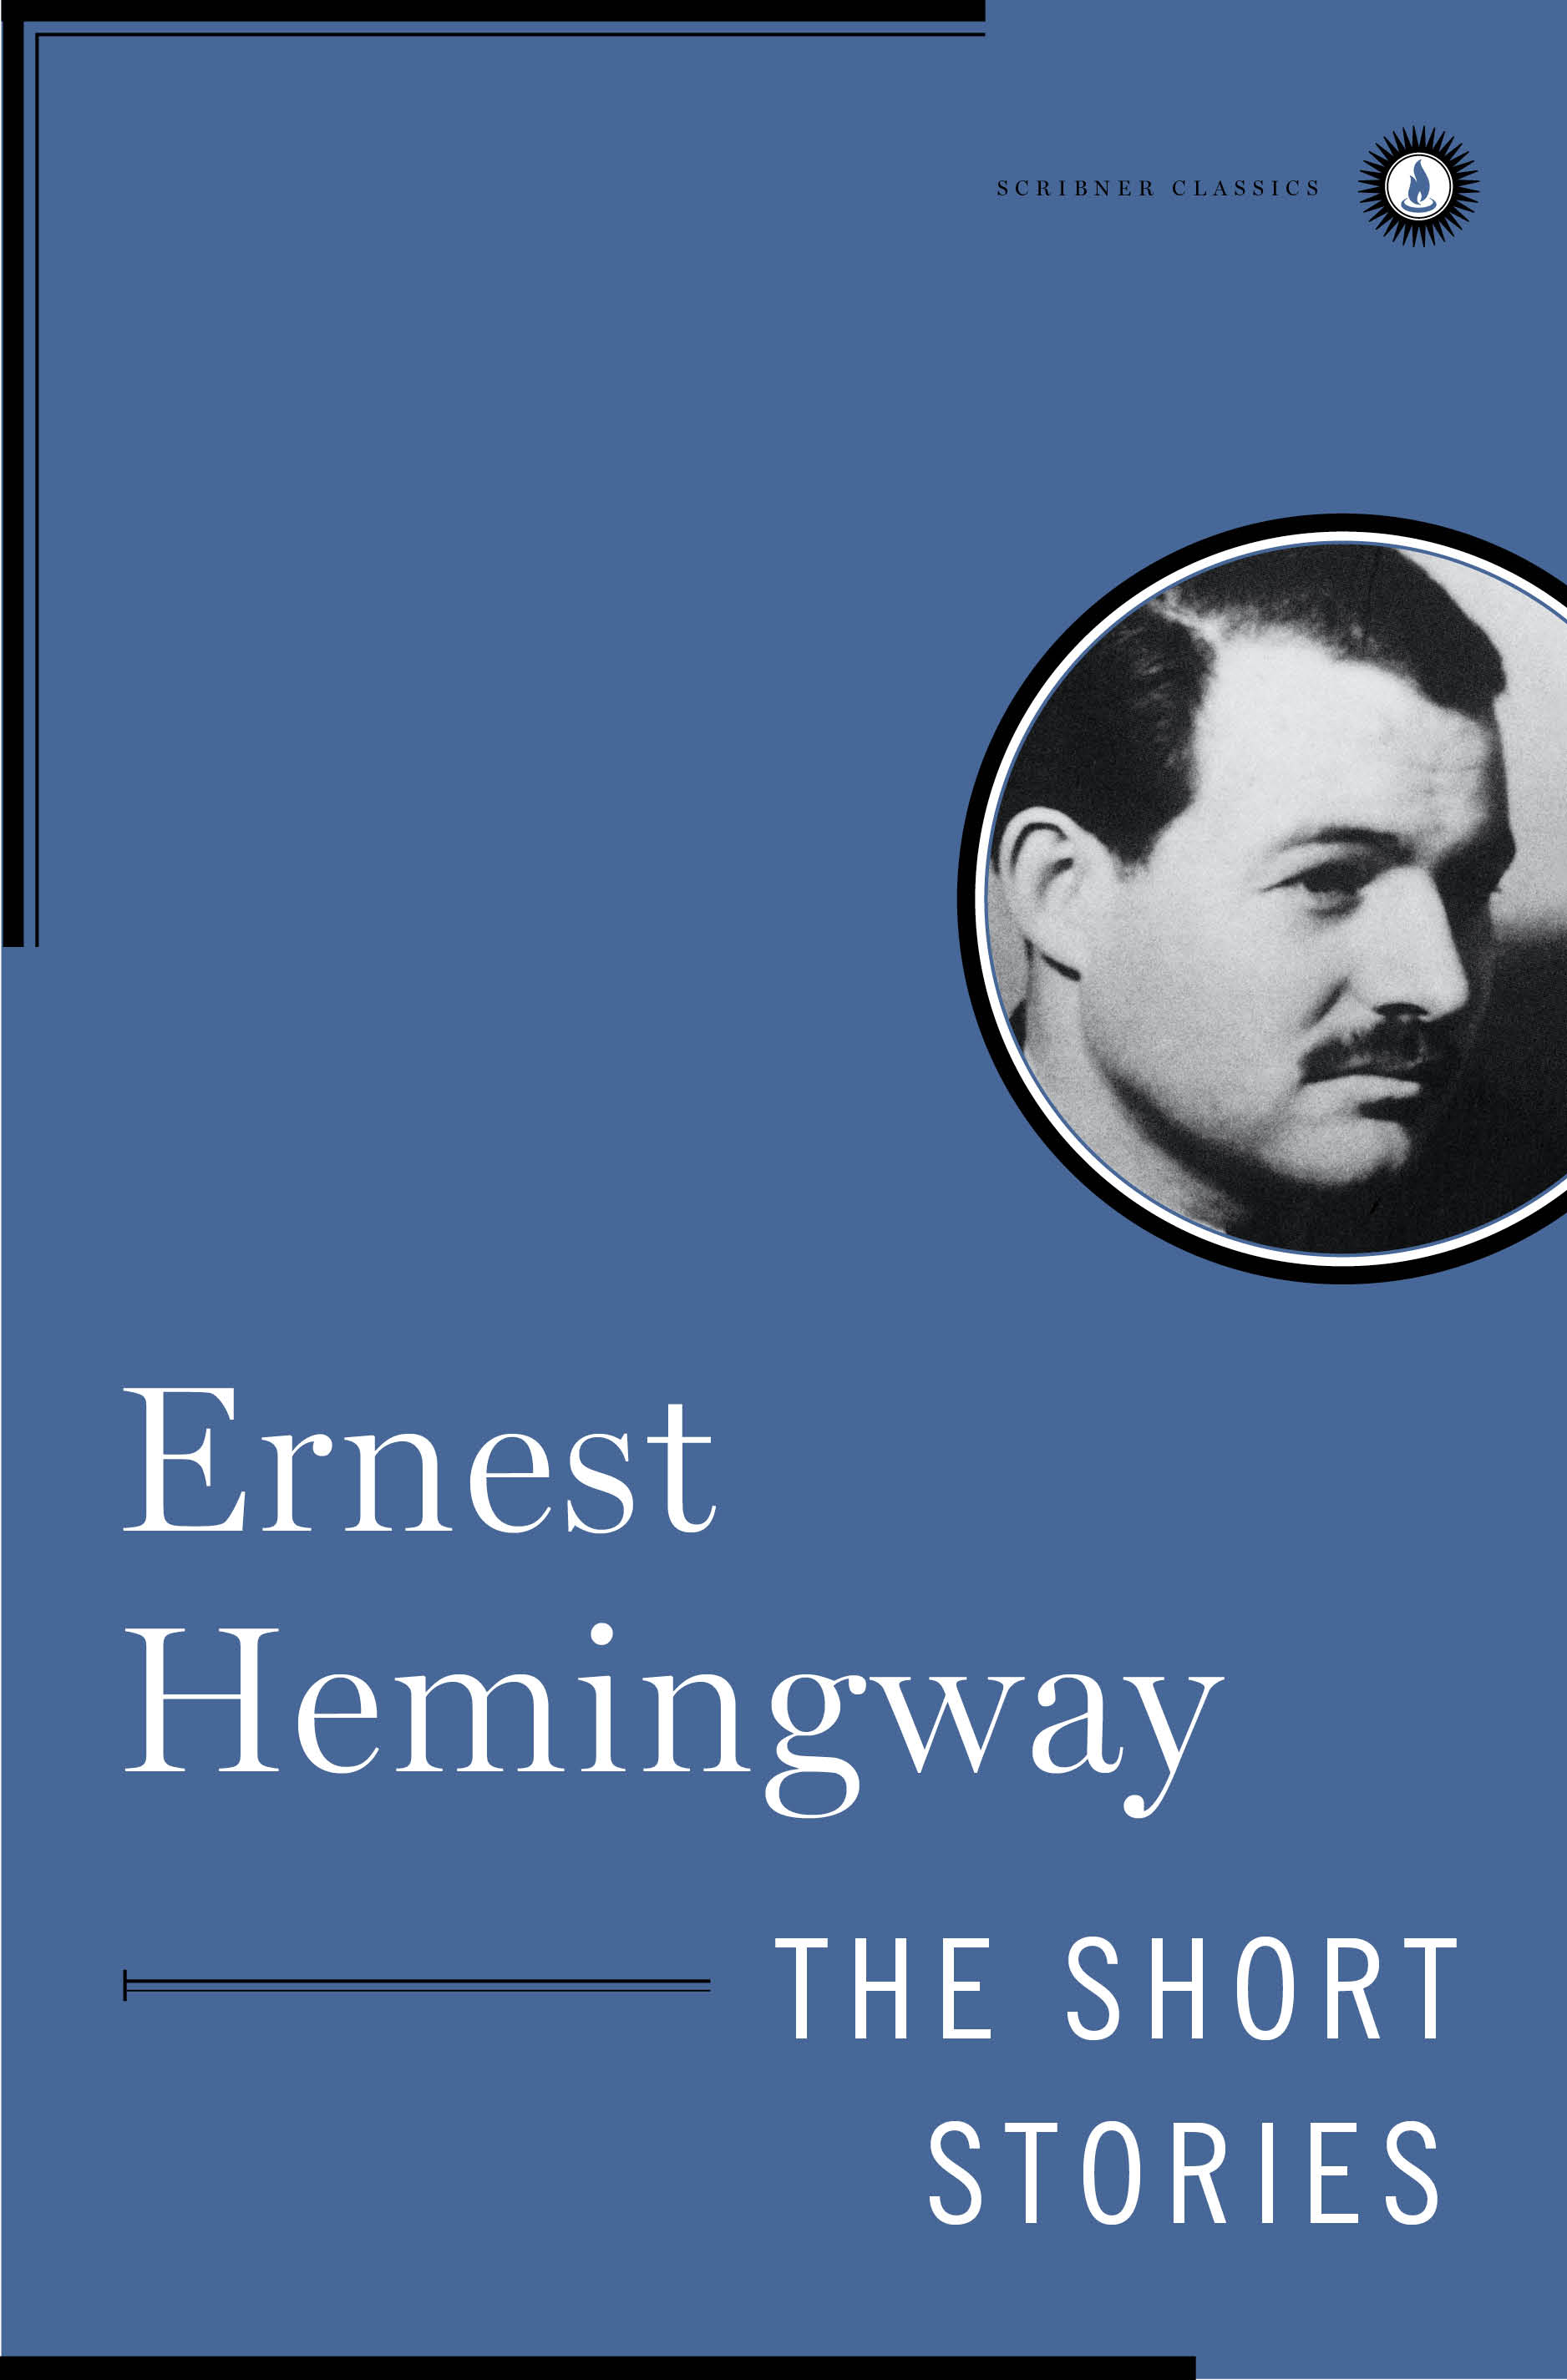 a biography of ernest hemingway the american novelist and short story writer The life of ernest hemingway by roger mcintyre ernest miller hemingway (july 21, 1899- july 2, 1961) was an american novelist, short story writer, and journalist his economical and.